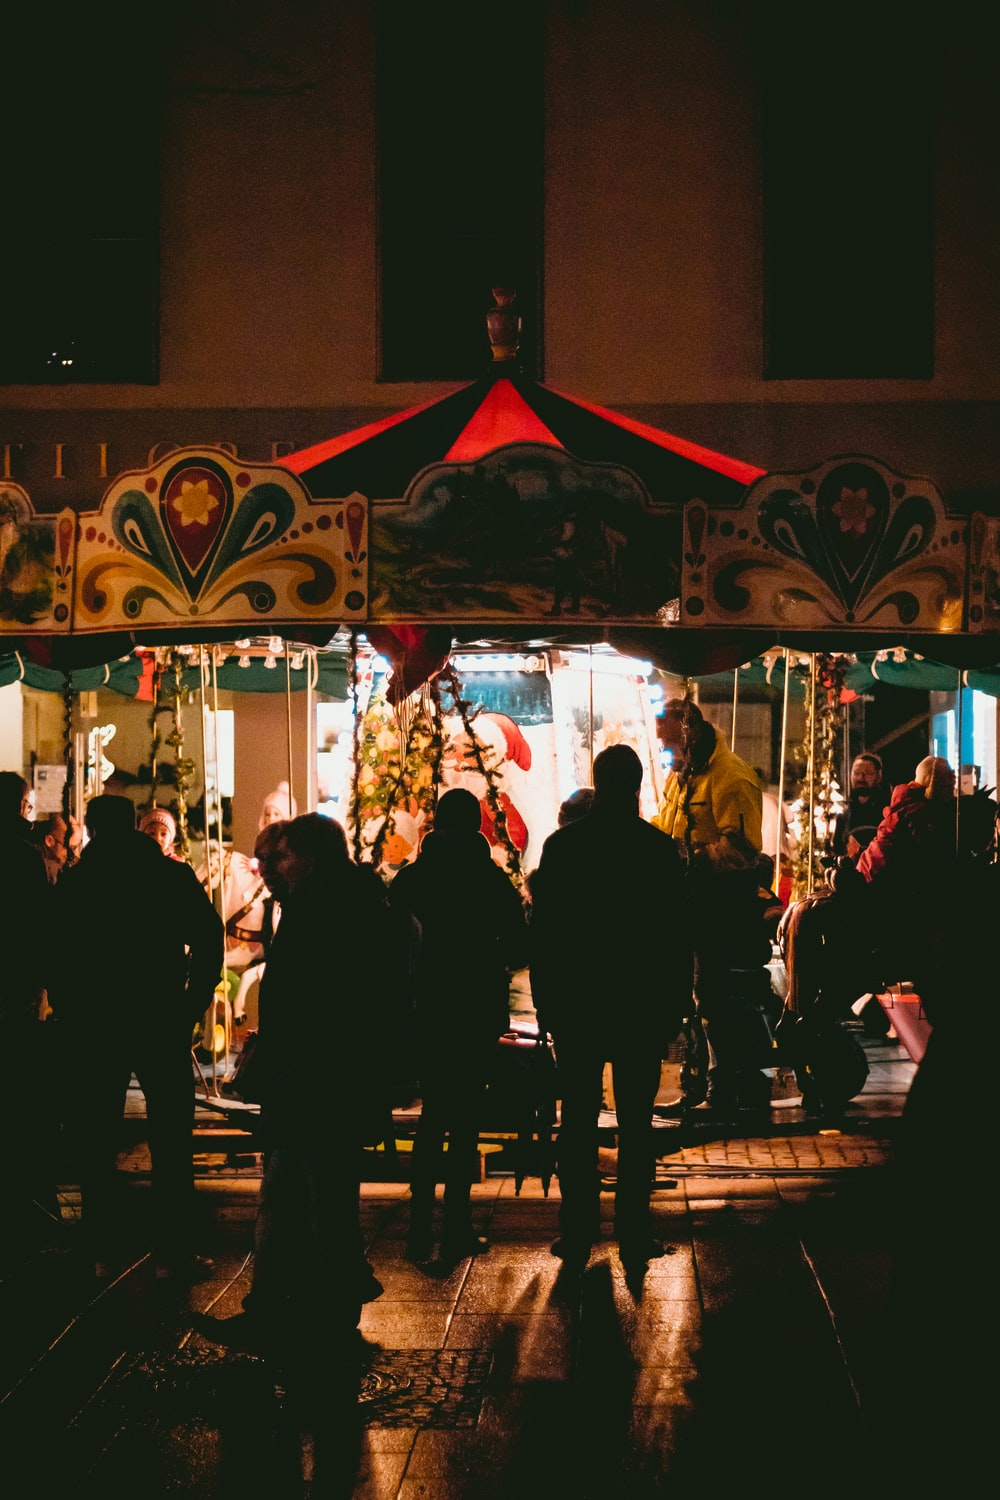 people riding and standing by merry-go-round at nighttime